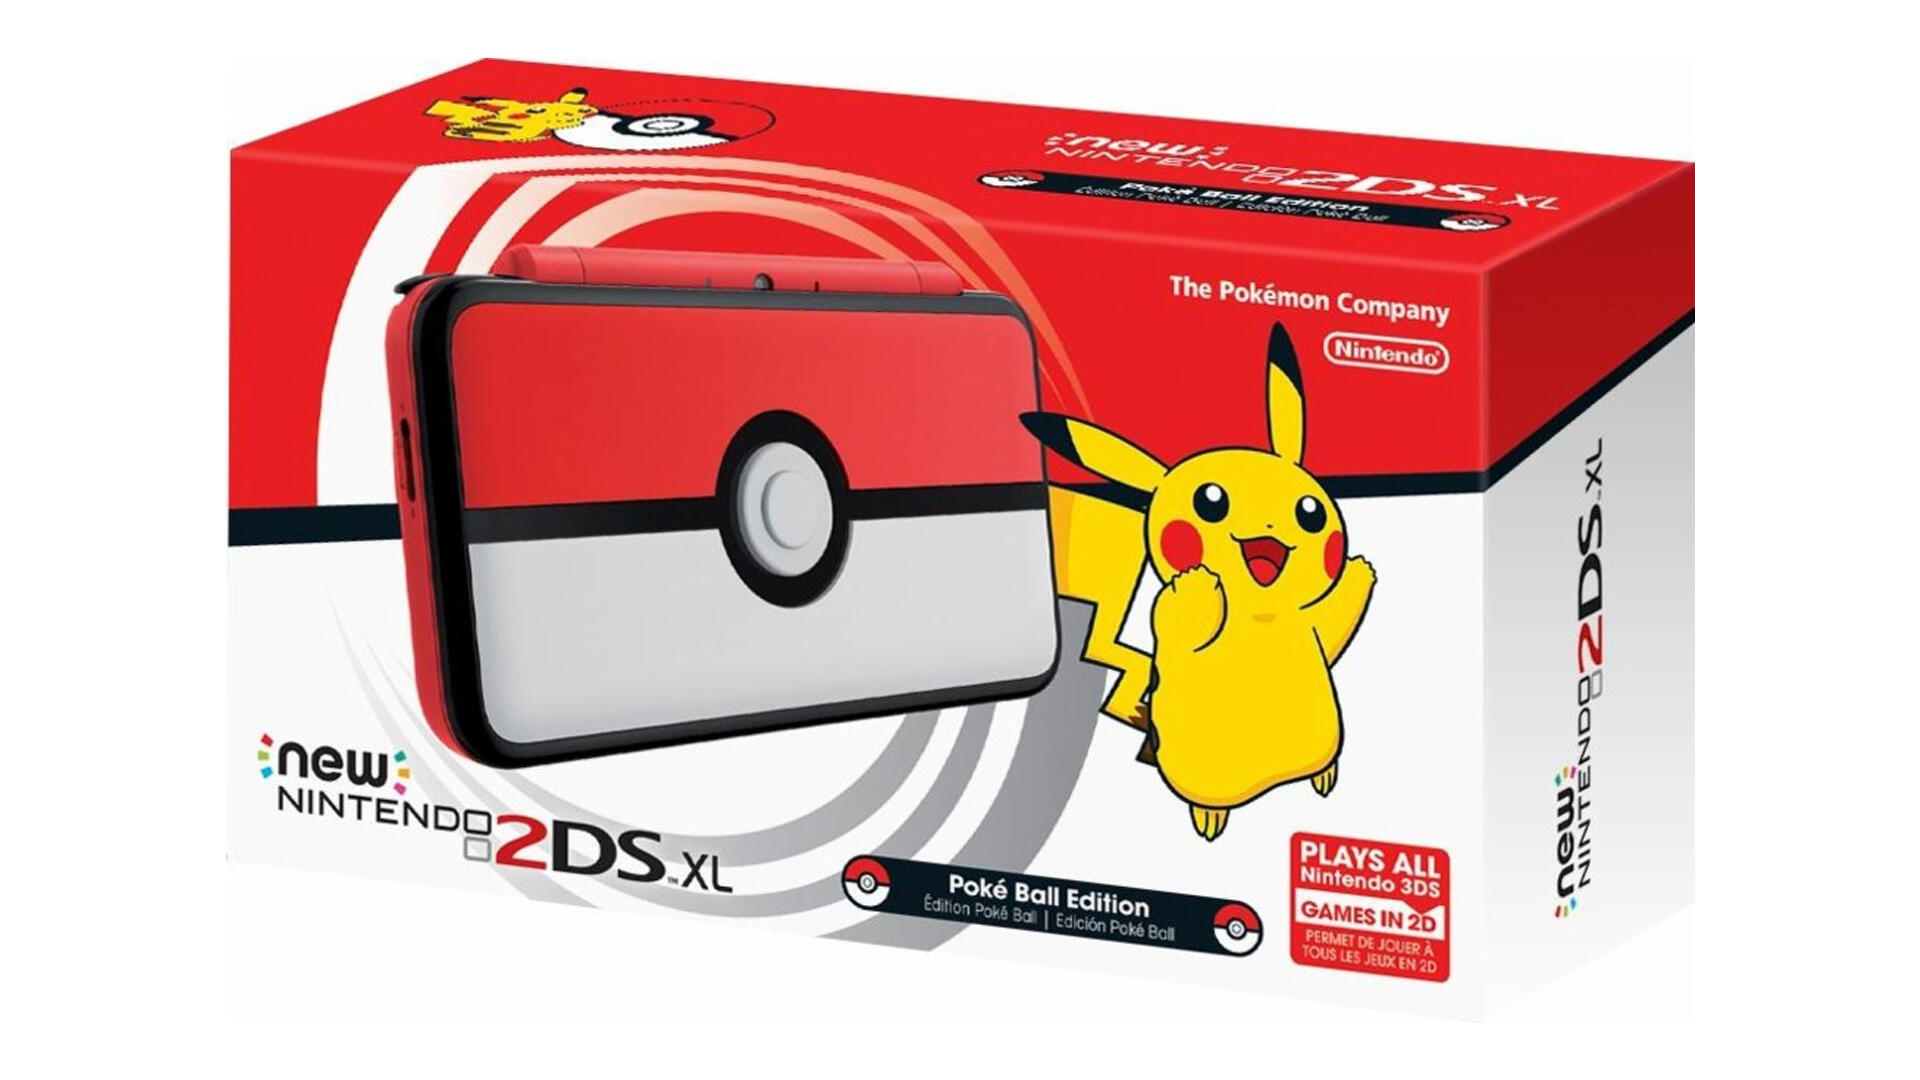 The PokéBall New Nintendo 2DS XL Is up for Pre-Order Now